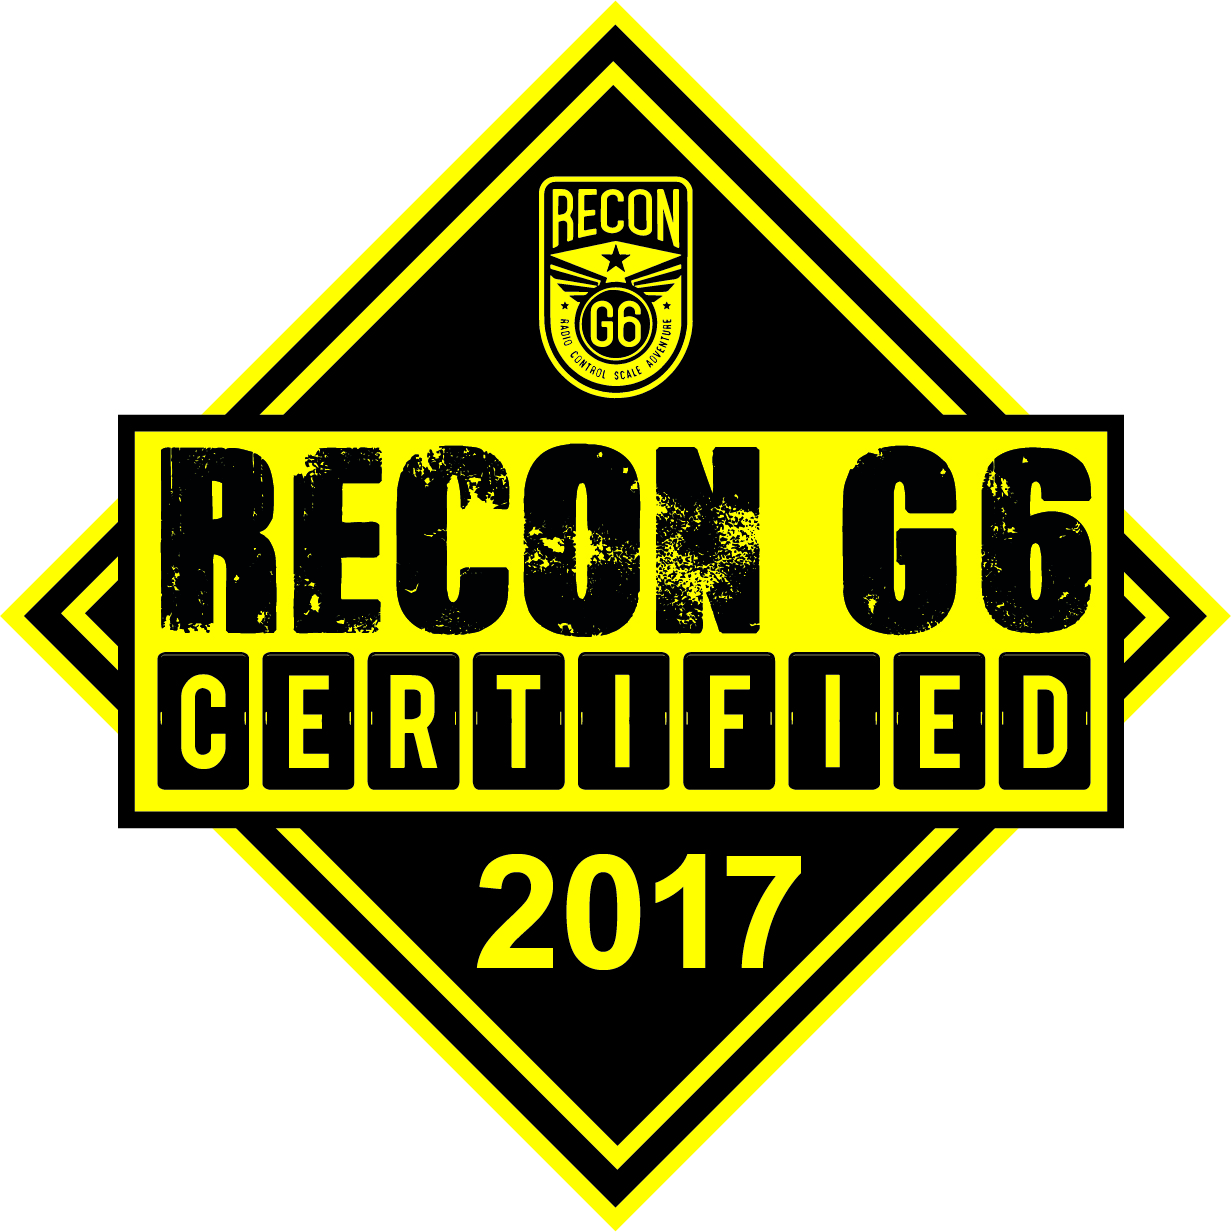 https://www.rc4wd.com/ProductImages/Logos/ReconG6Certified.jpg